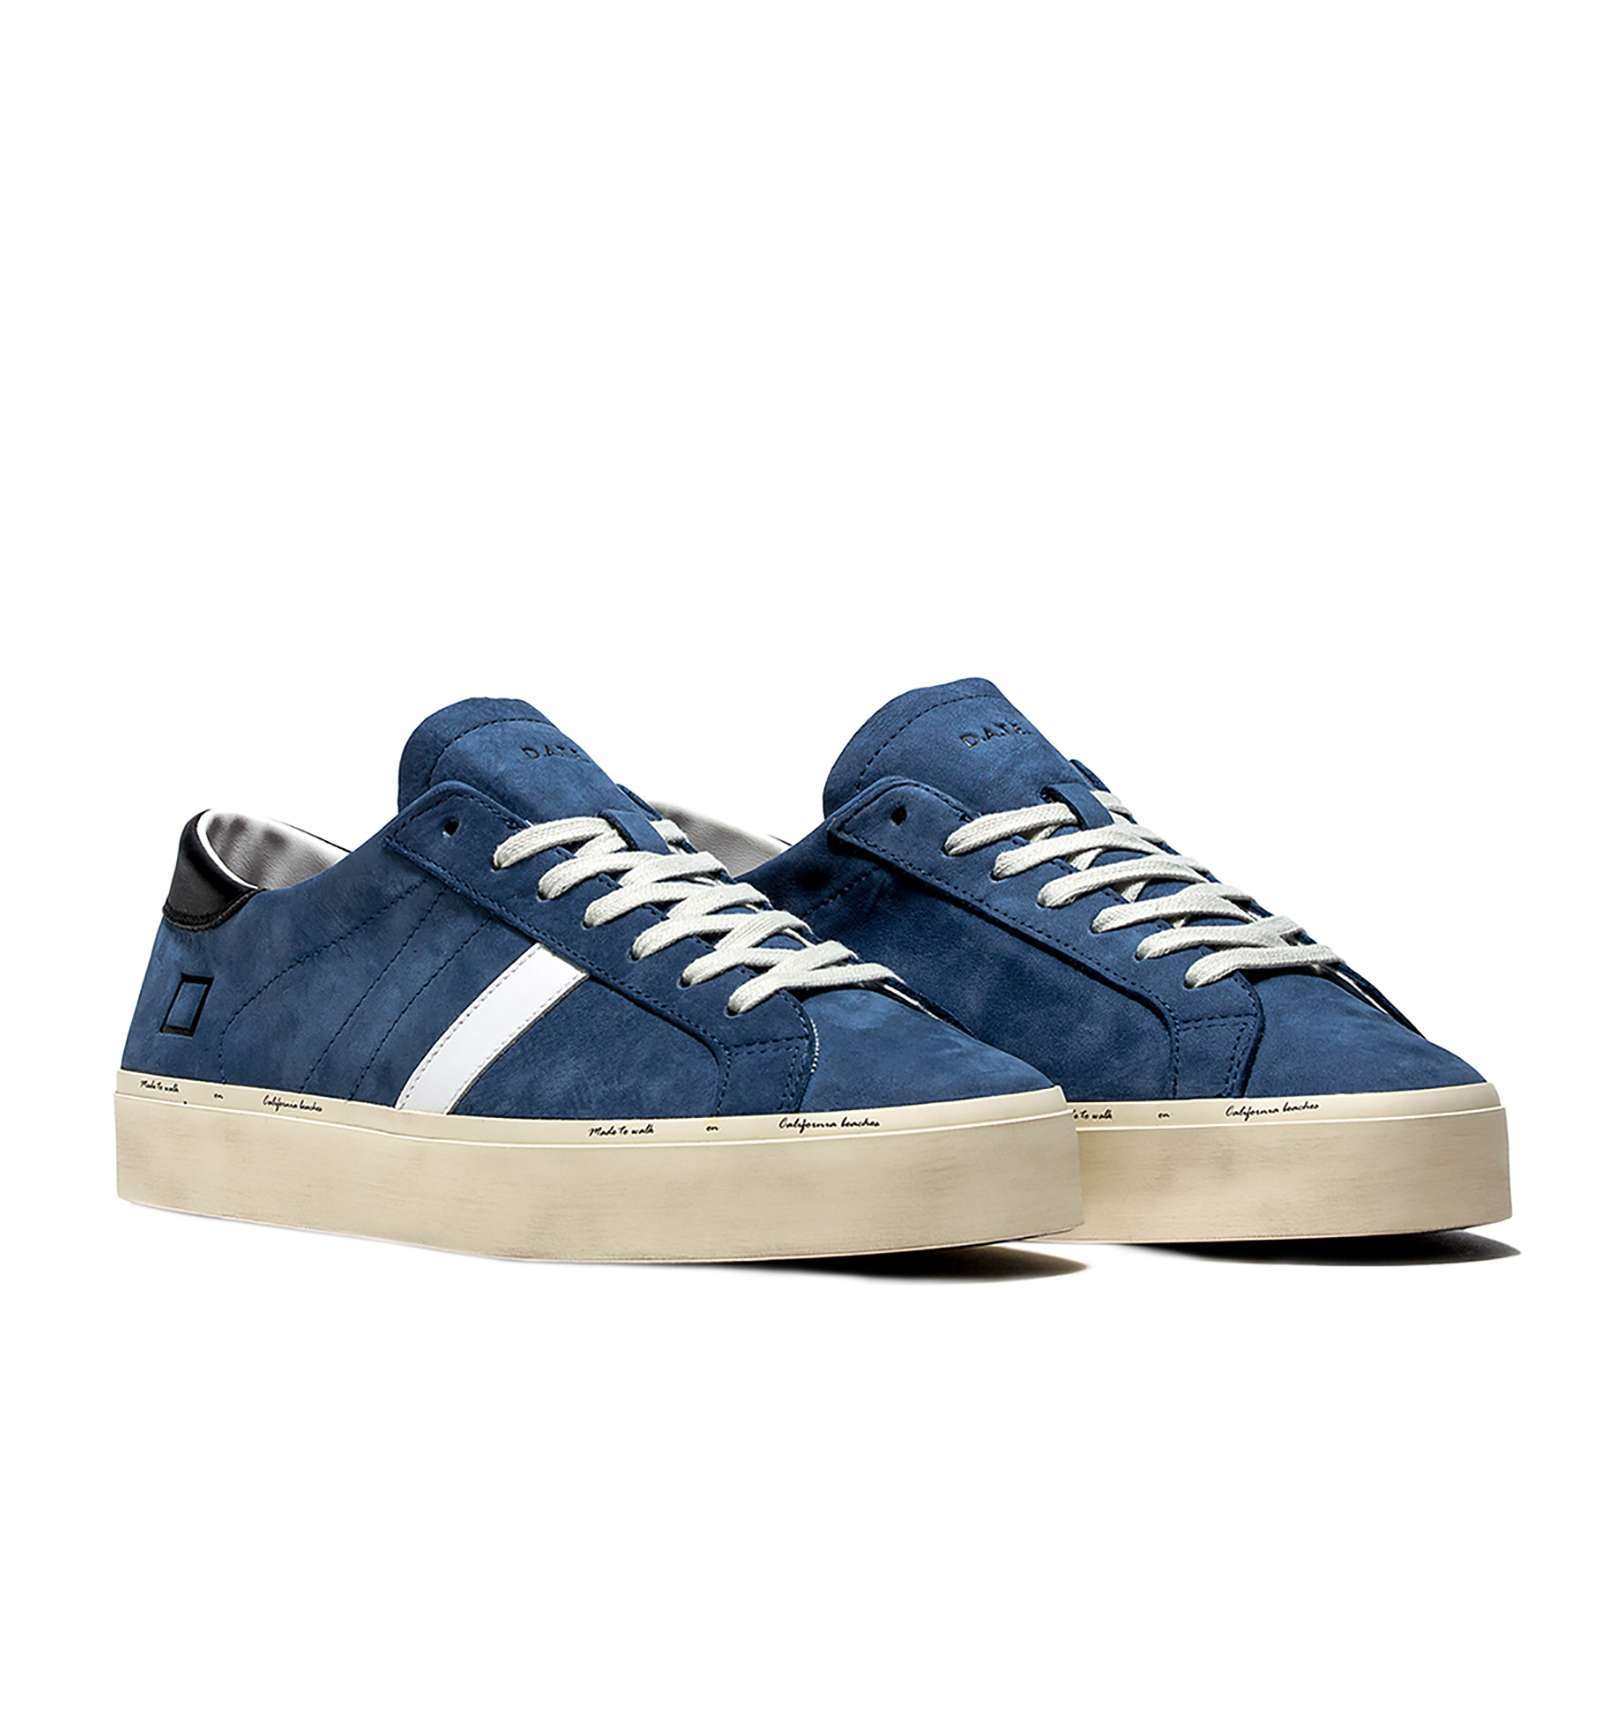 https://www.parmax.com/media/catalog/product/a/i/AI-outlet_parmax-sneaker-uomo-Date-M301-B.jpg